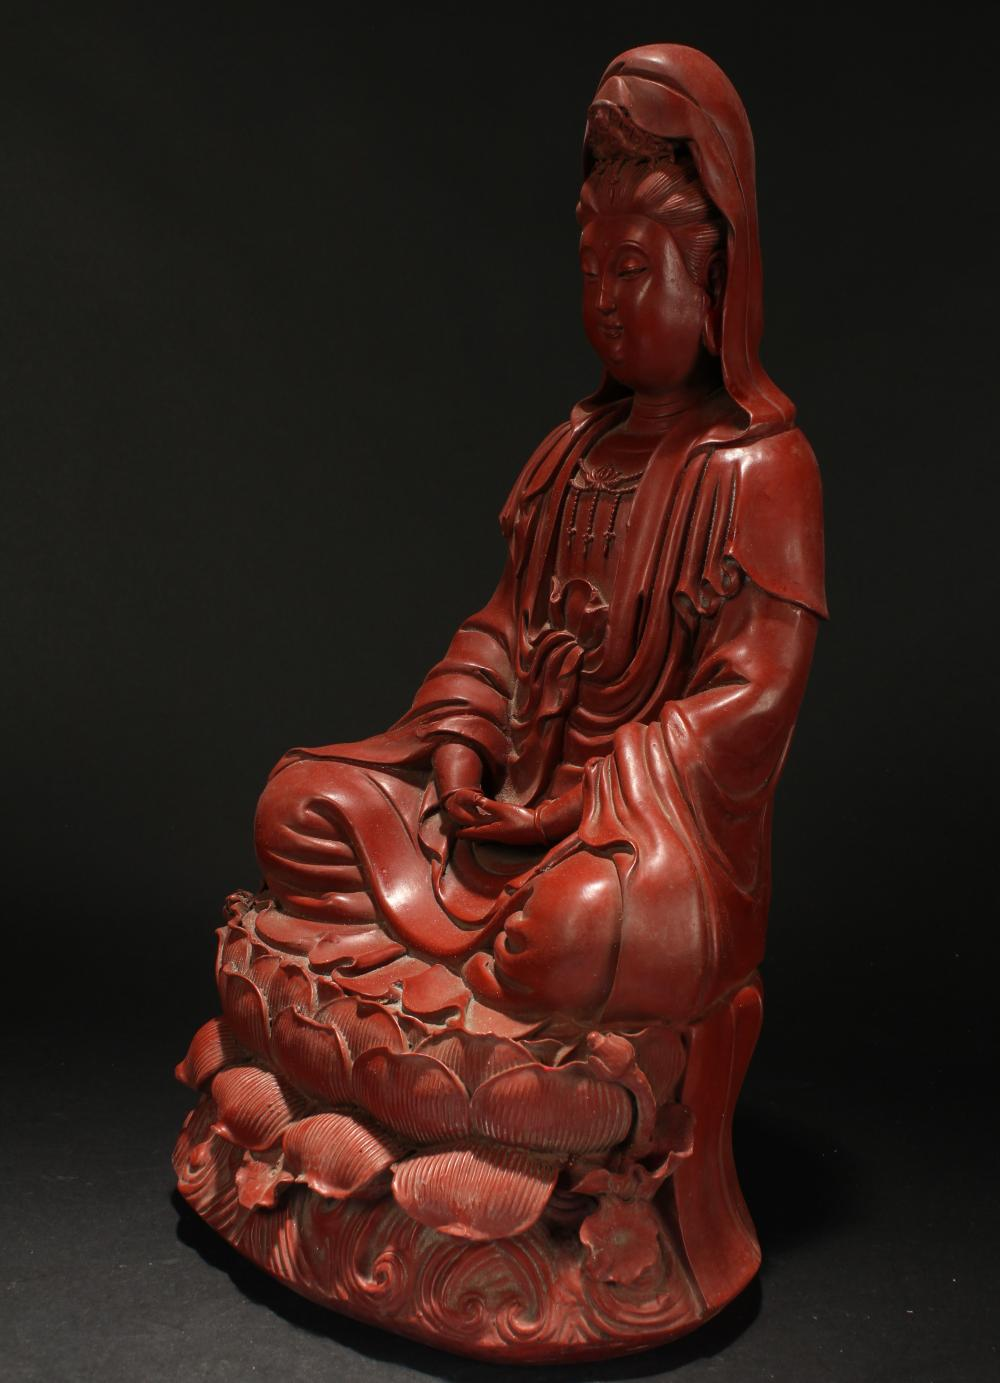 Lot 16: A Chinese Seated Estate Lacquer Guanyin Display Statue